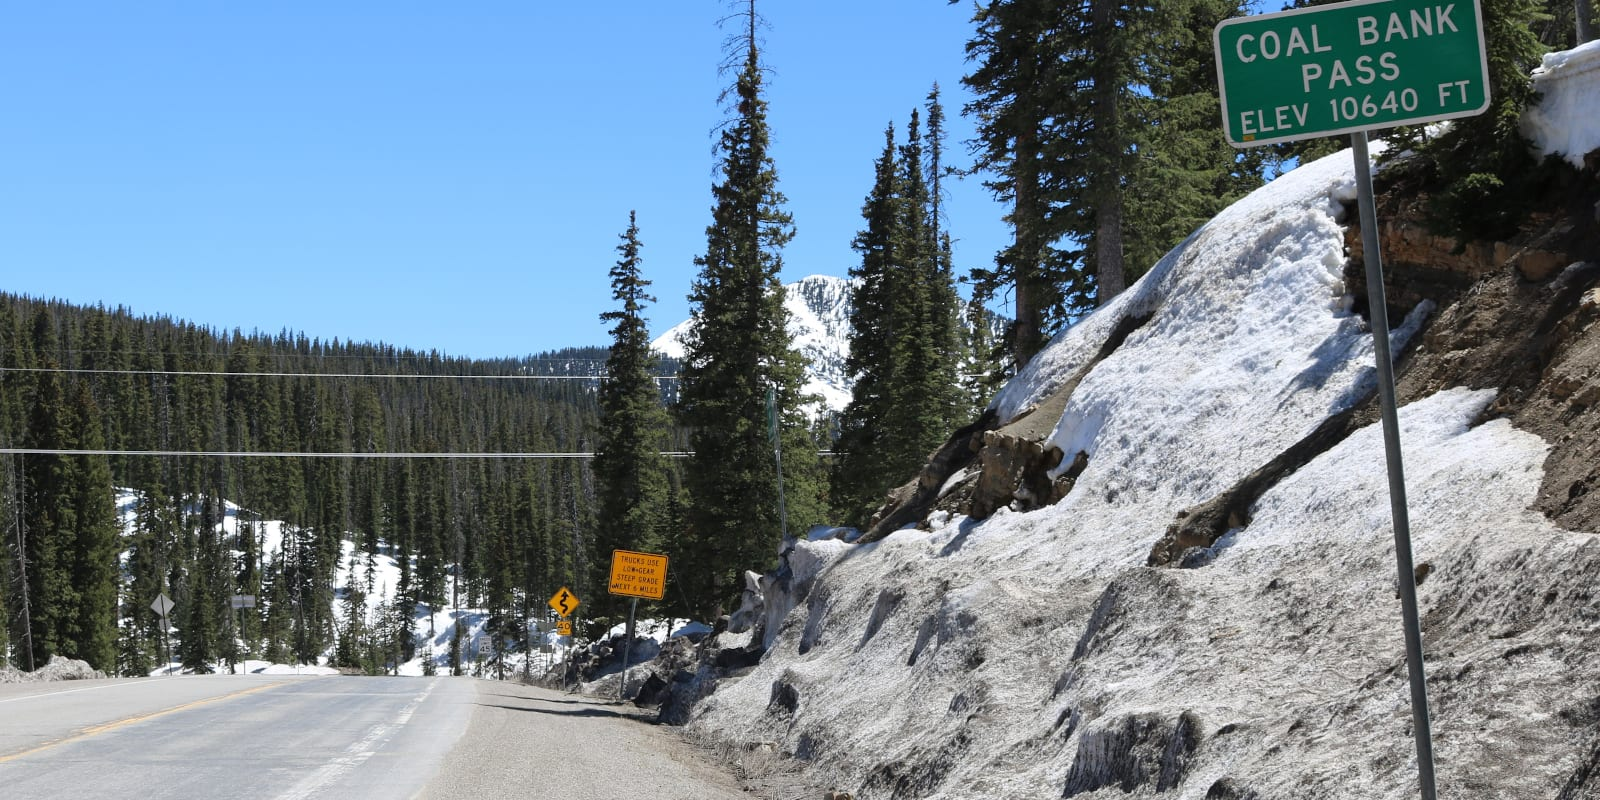 One of the signs at the top of Coal Bank Pass in San Juan County, Colorado